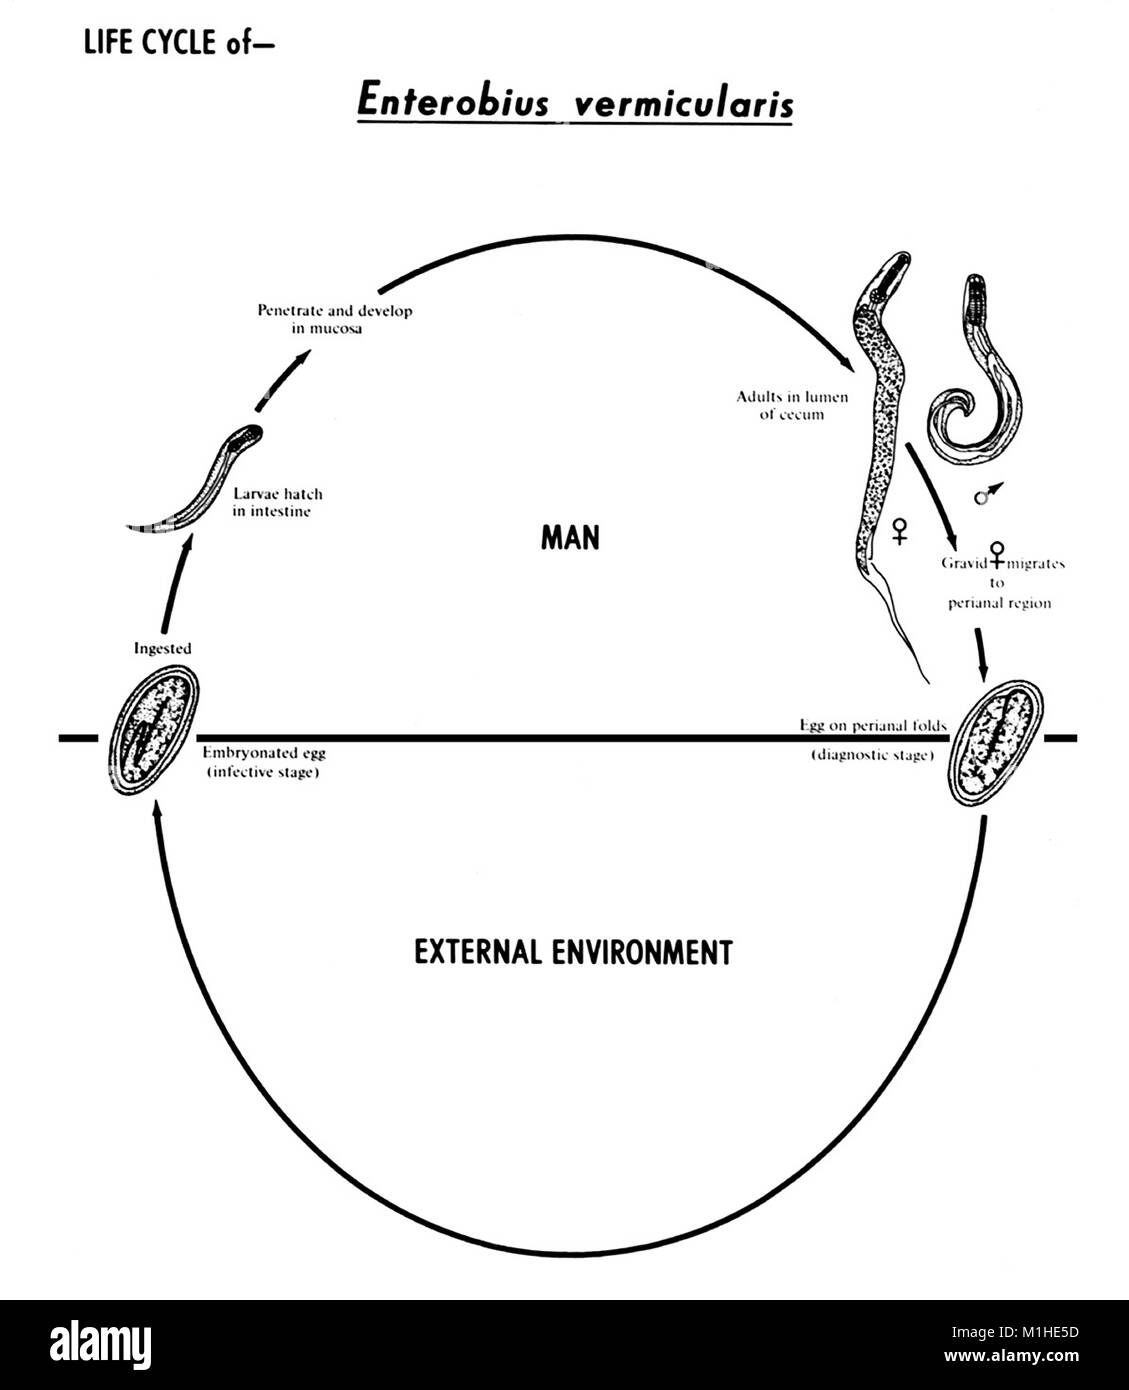 human life cycle stages diagram magnetic door lock wiring pinworm nematode enterobius vermicularis various in the illustrated 1982 image courtesy centers for disease control cdc